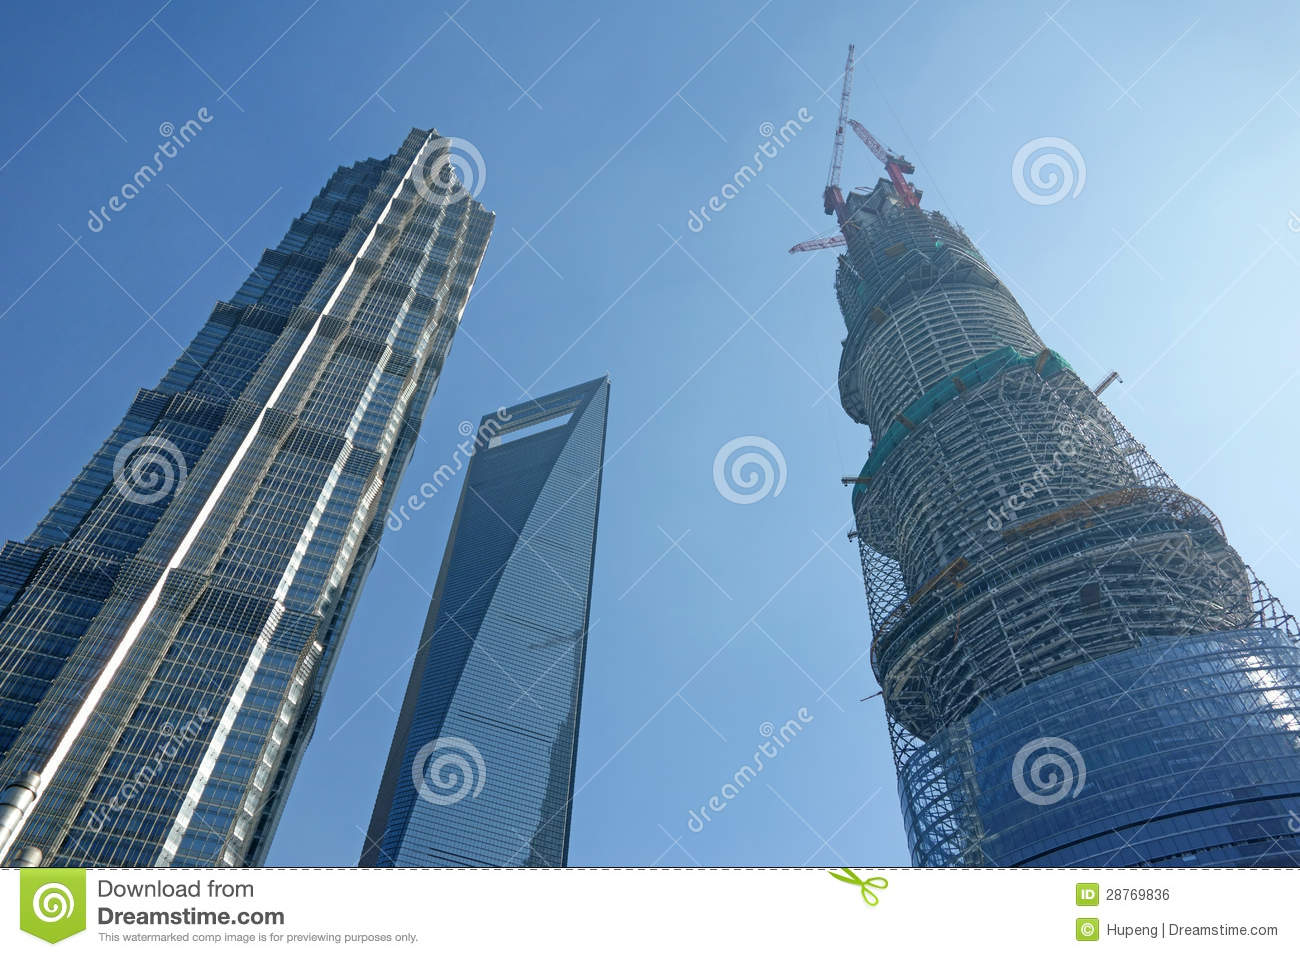 Shanghai Tower | EWCG